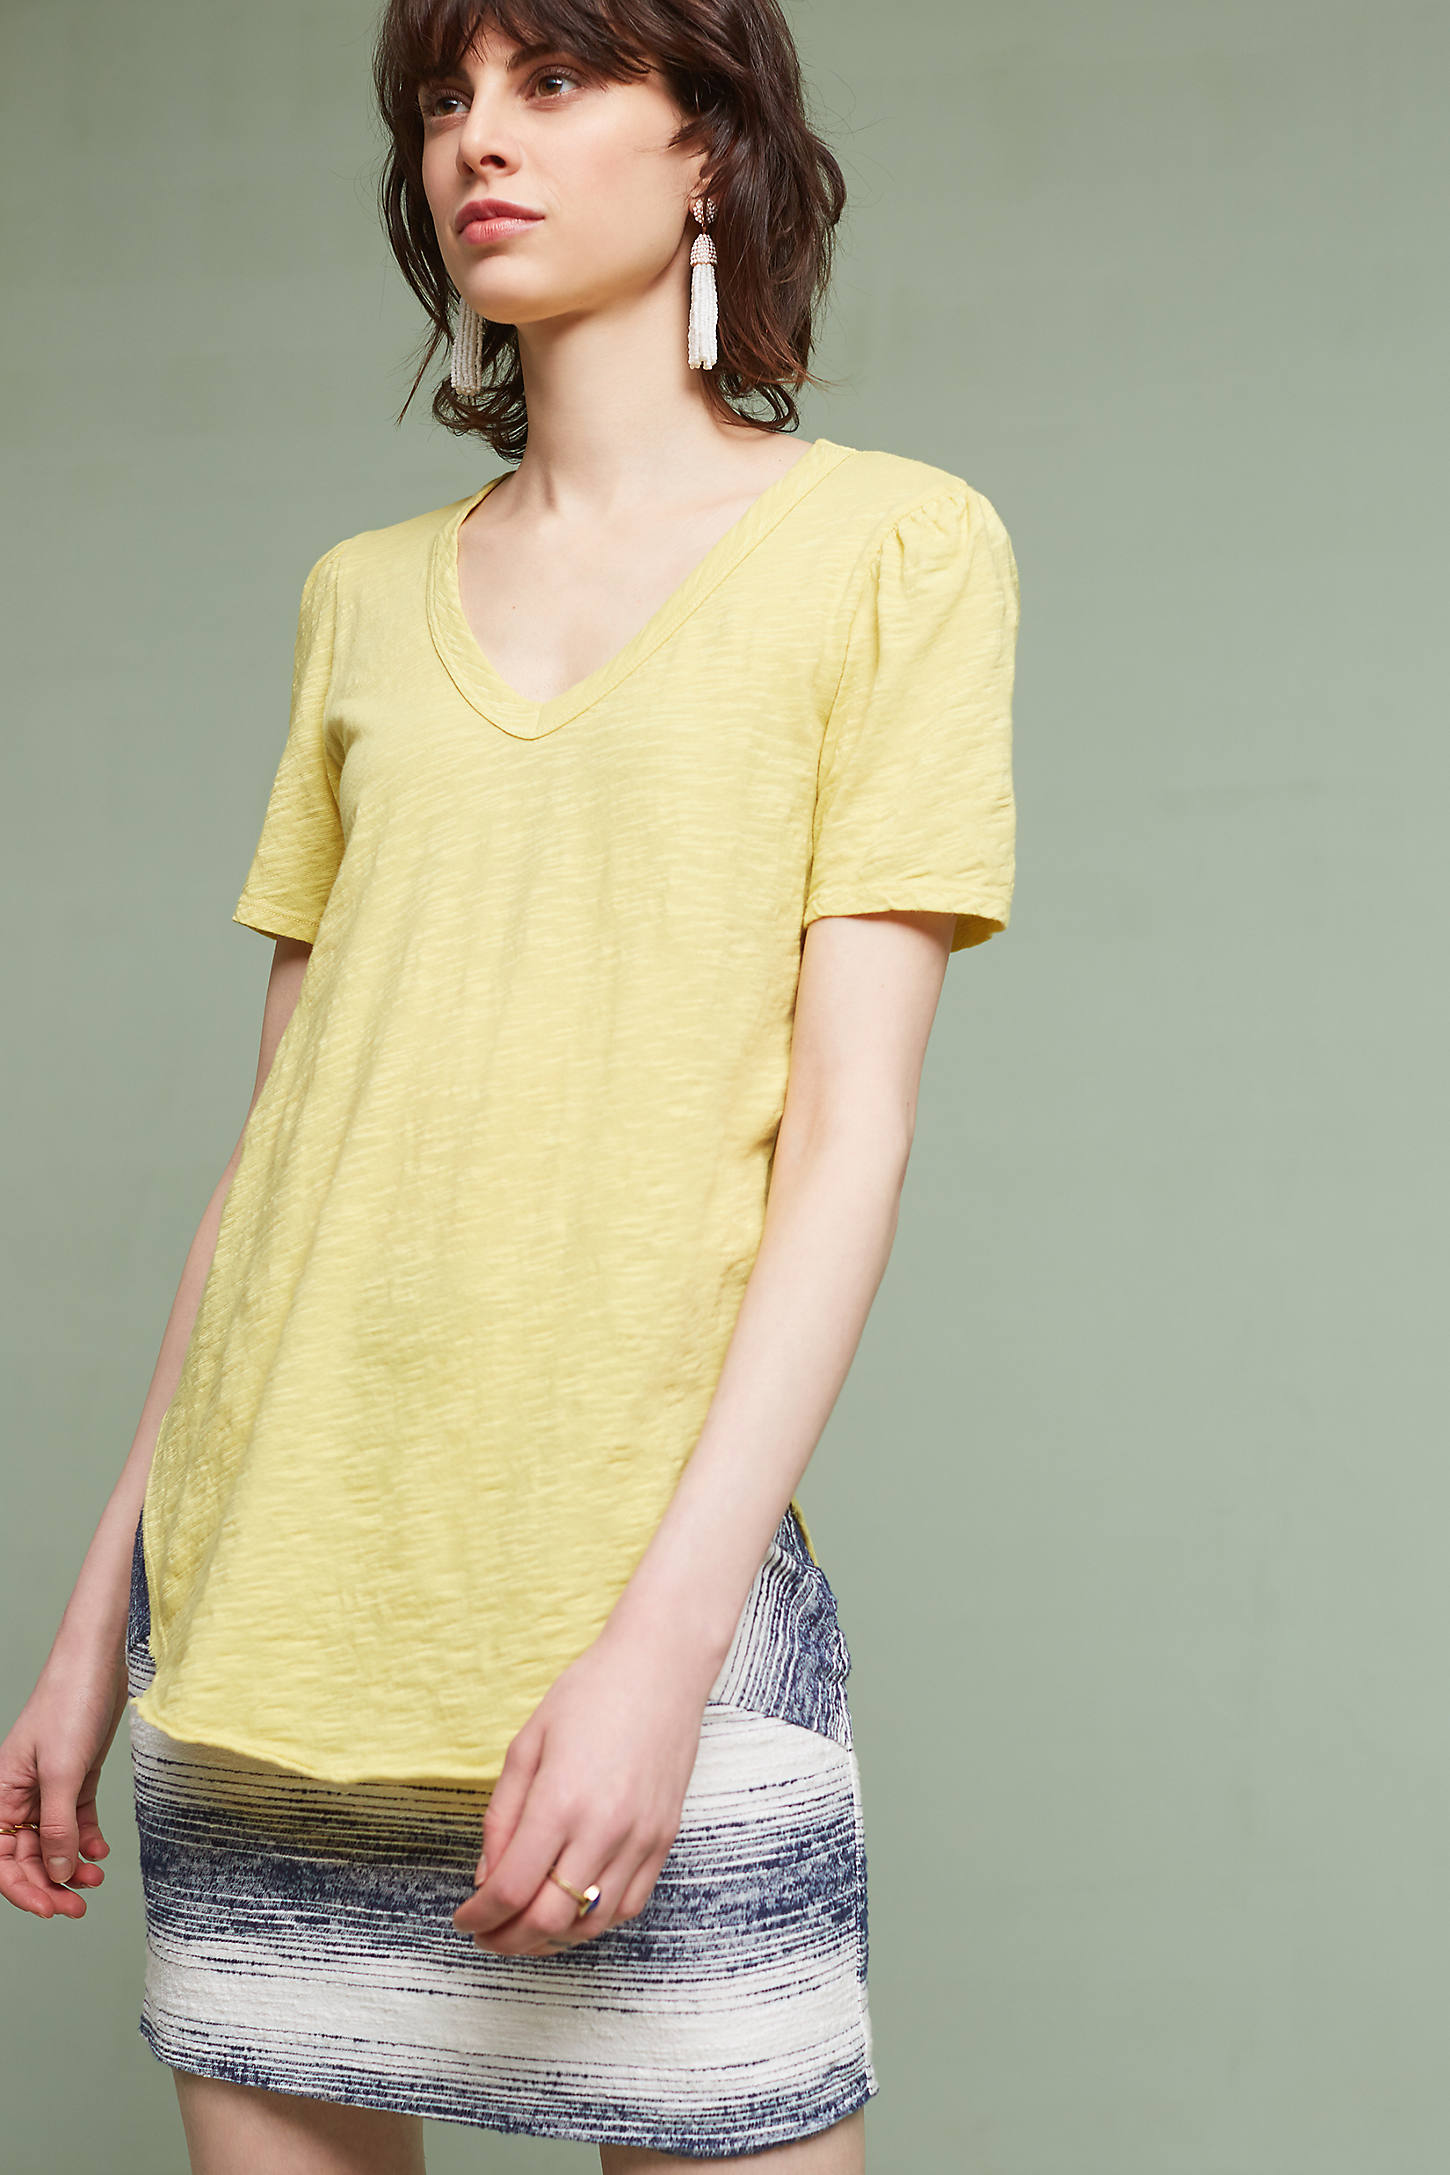 Outfield V-Neck Tee